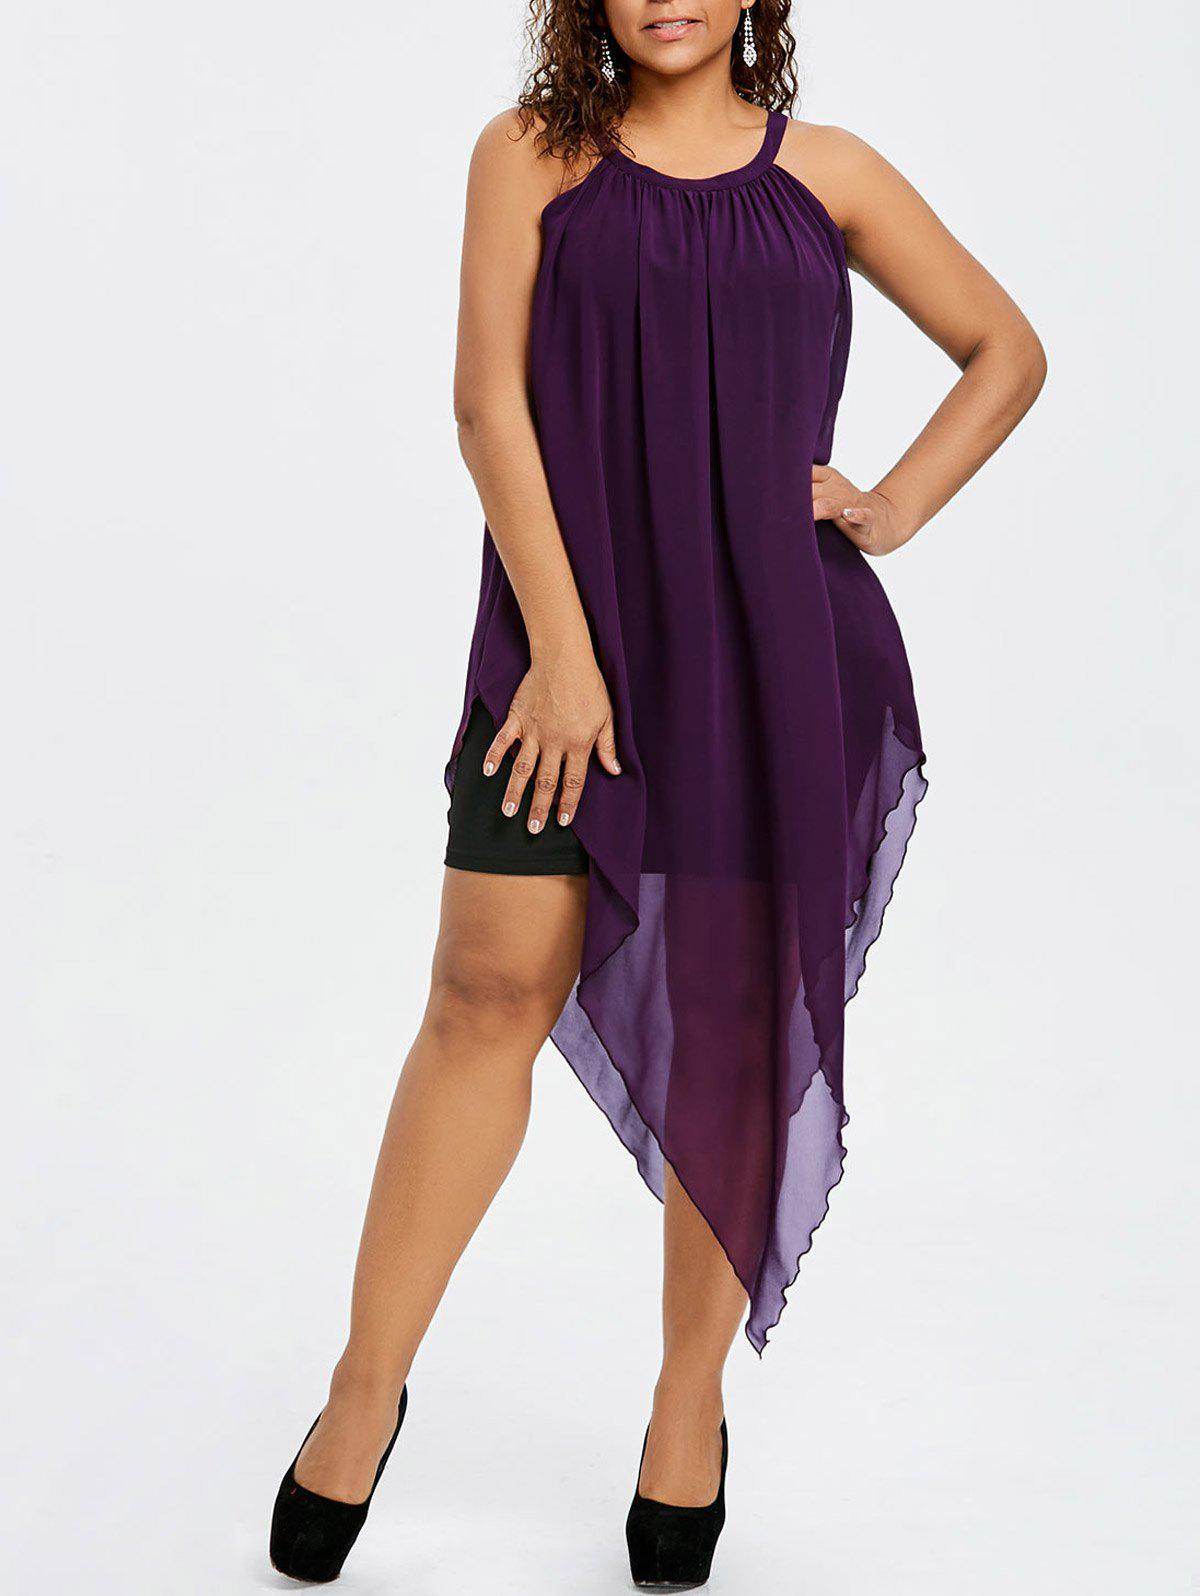 Plus Size Sleeveless Flowing Asymmetric Chiffon Dress - PURPLE XL